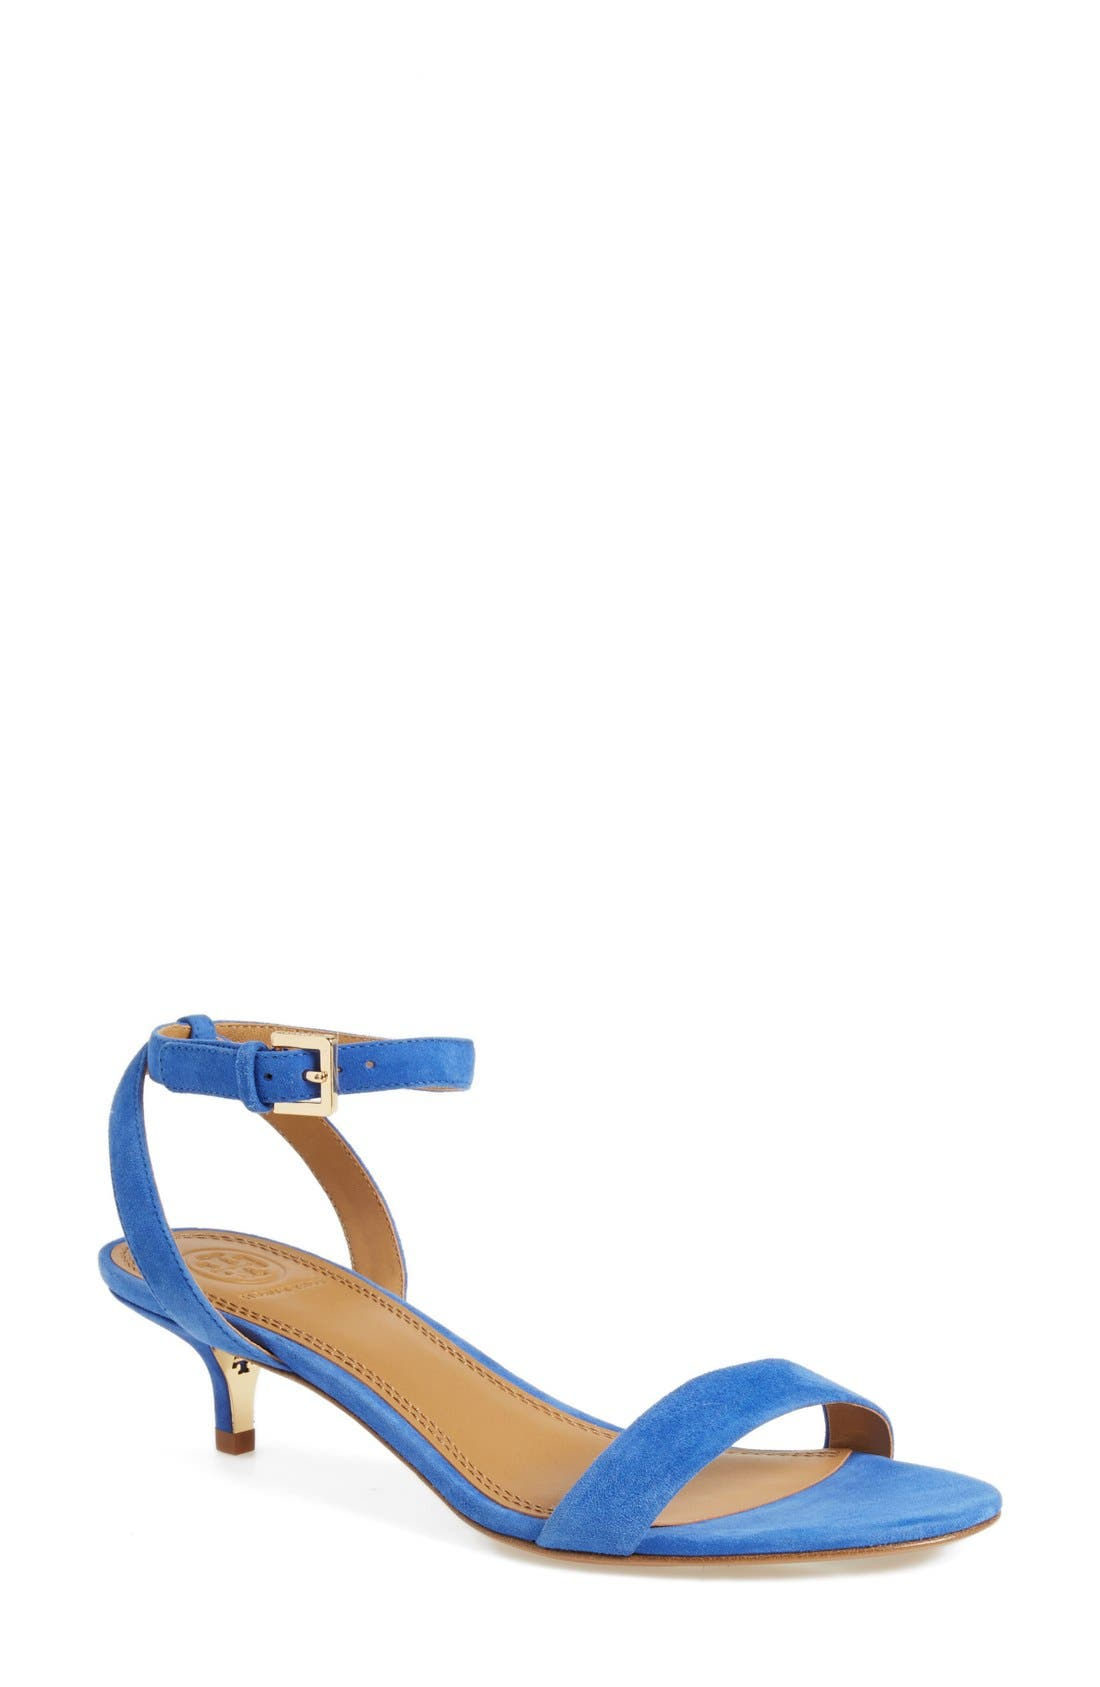 'Elana' Ankle Strap Sandal,                         Main,                         color, Jelly Blue Suede